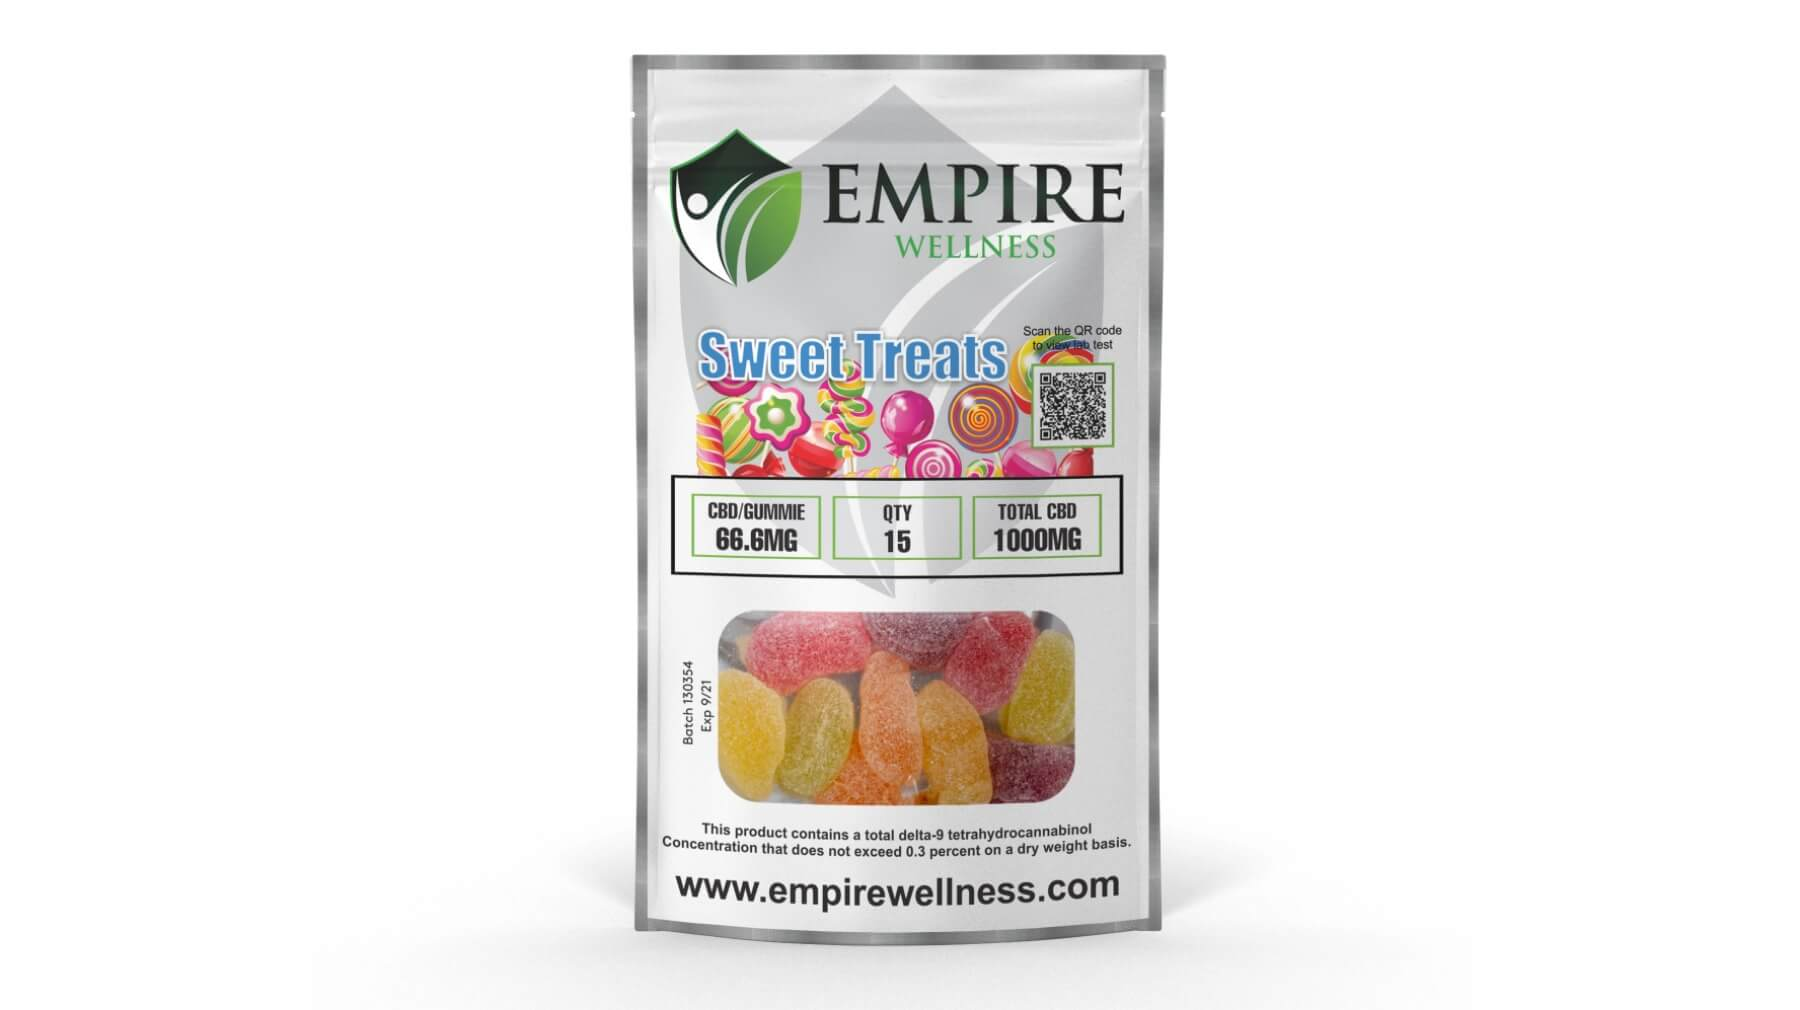 Empire Wellness sweet treats